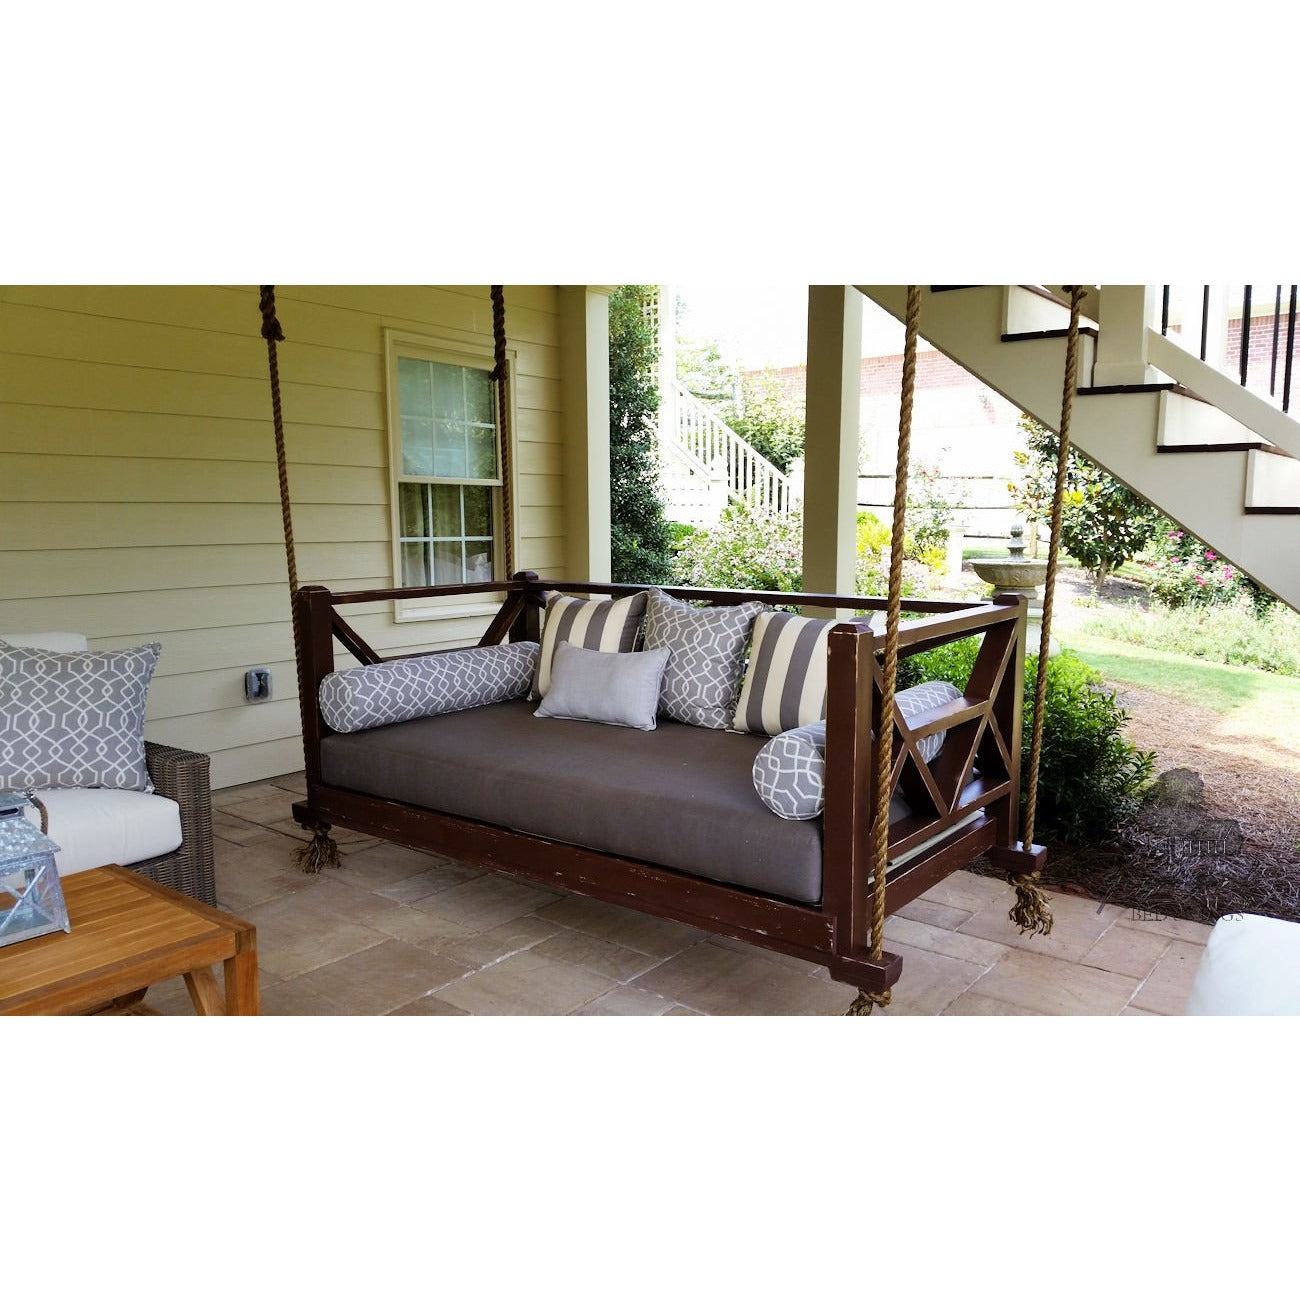 ... Seaside Bed Swing   Hanging Porch Bed With Canvas Taupe Cushions And  Painted French Roast ...